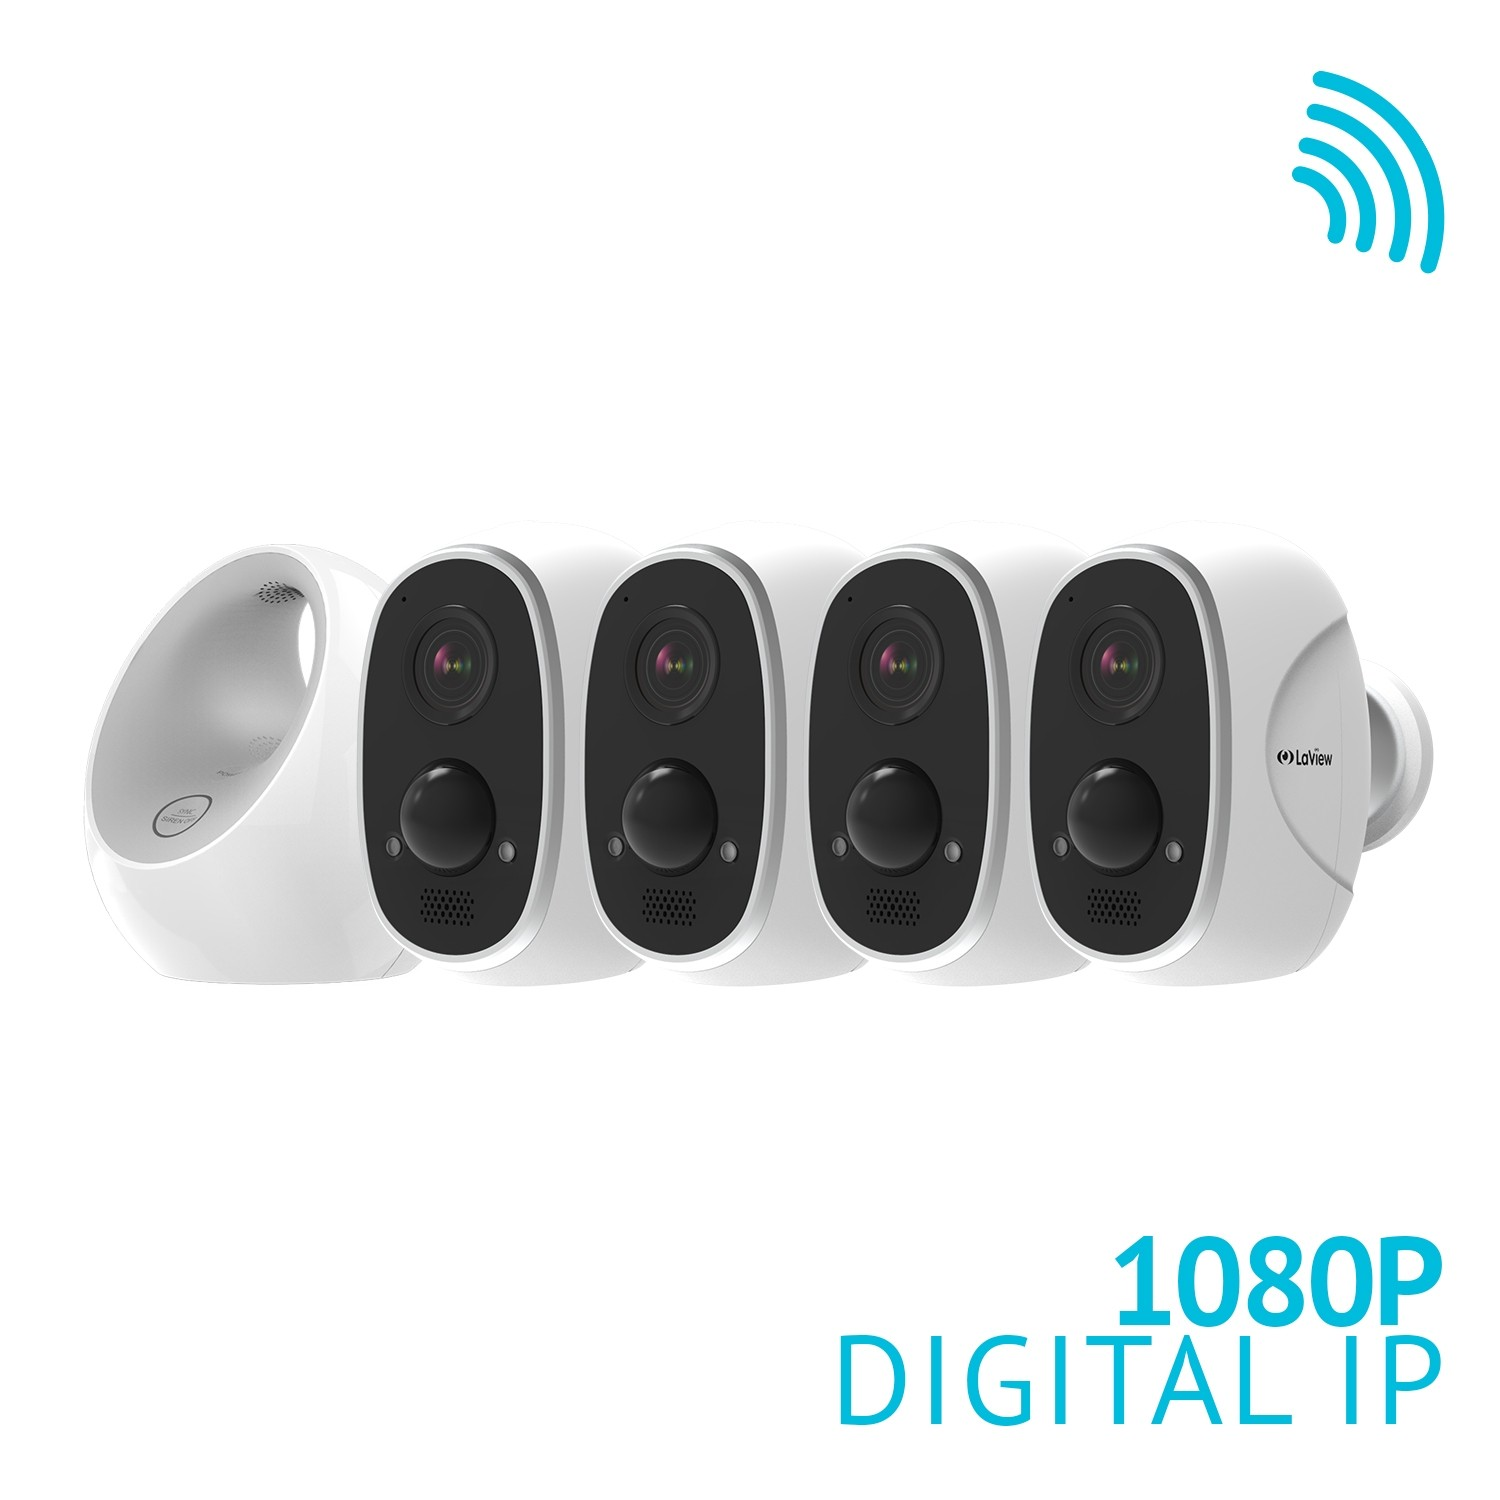 ONE Link - 4x HD 1080P Battery Powered WiFi Outdoor Security Camera